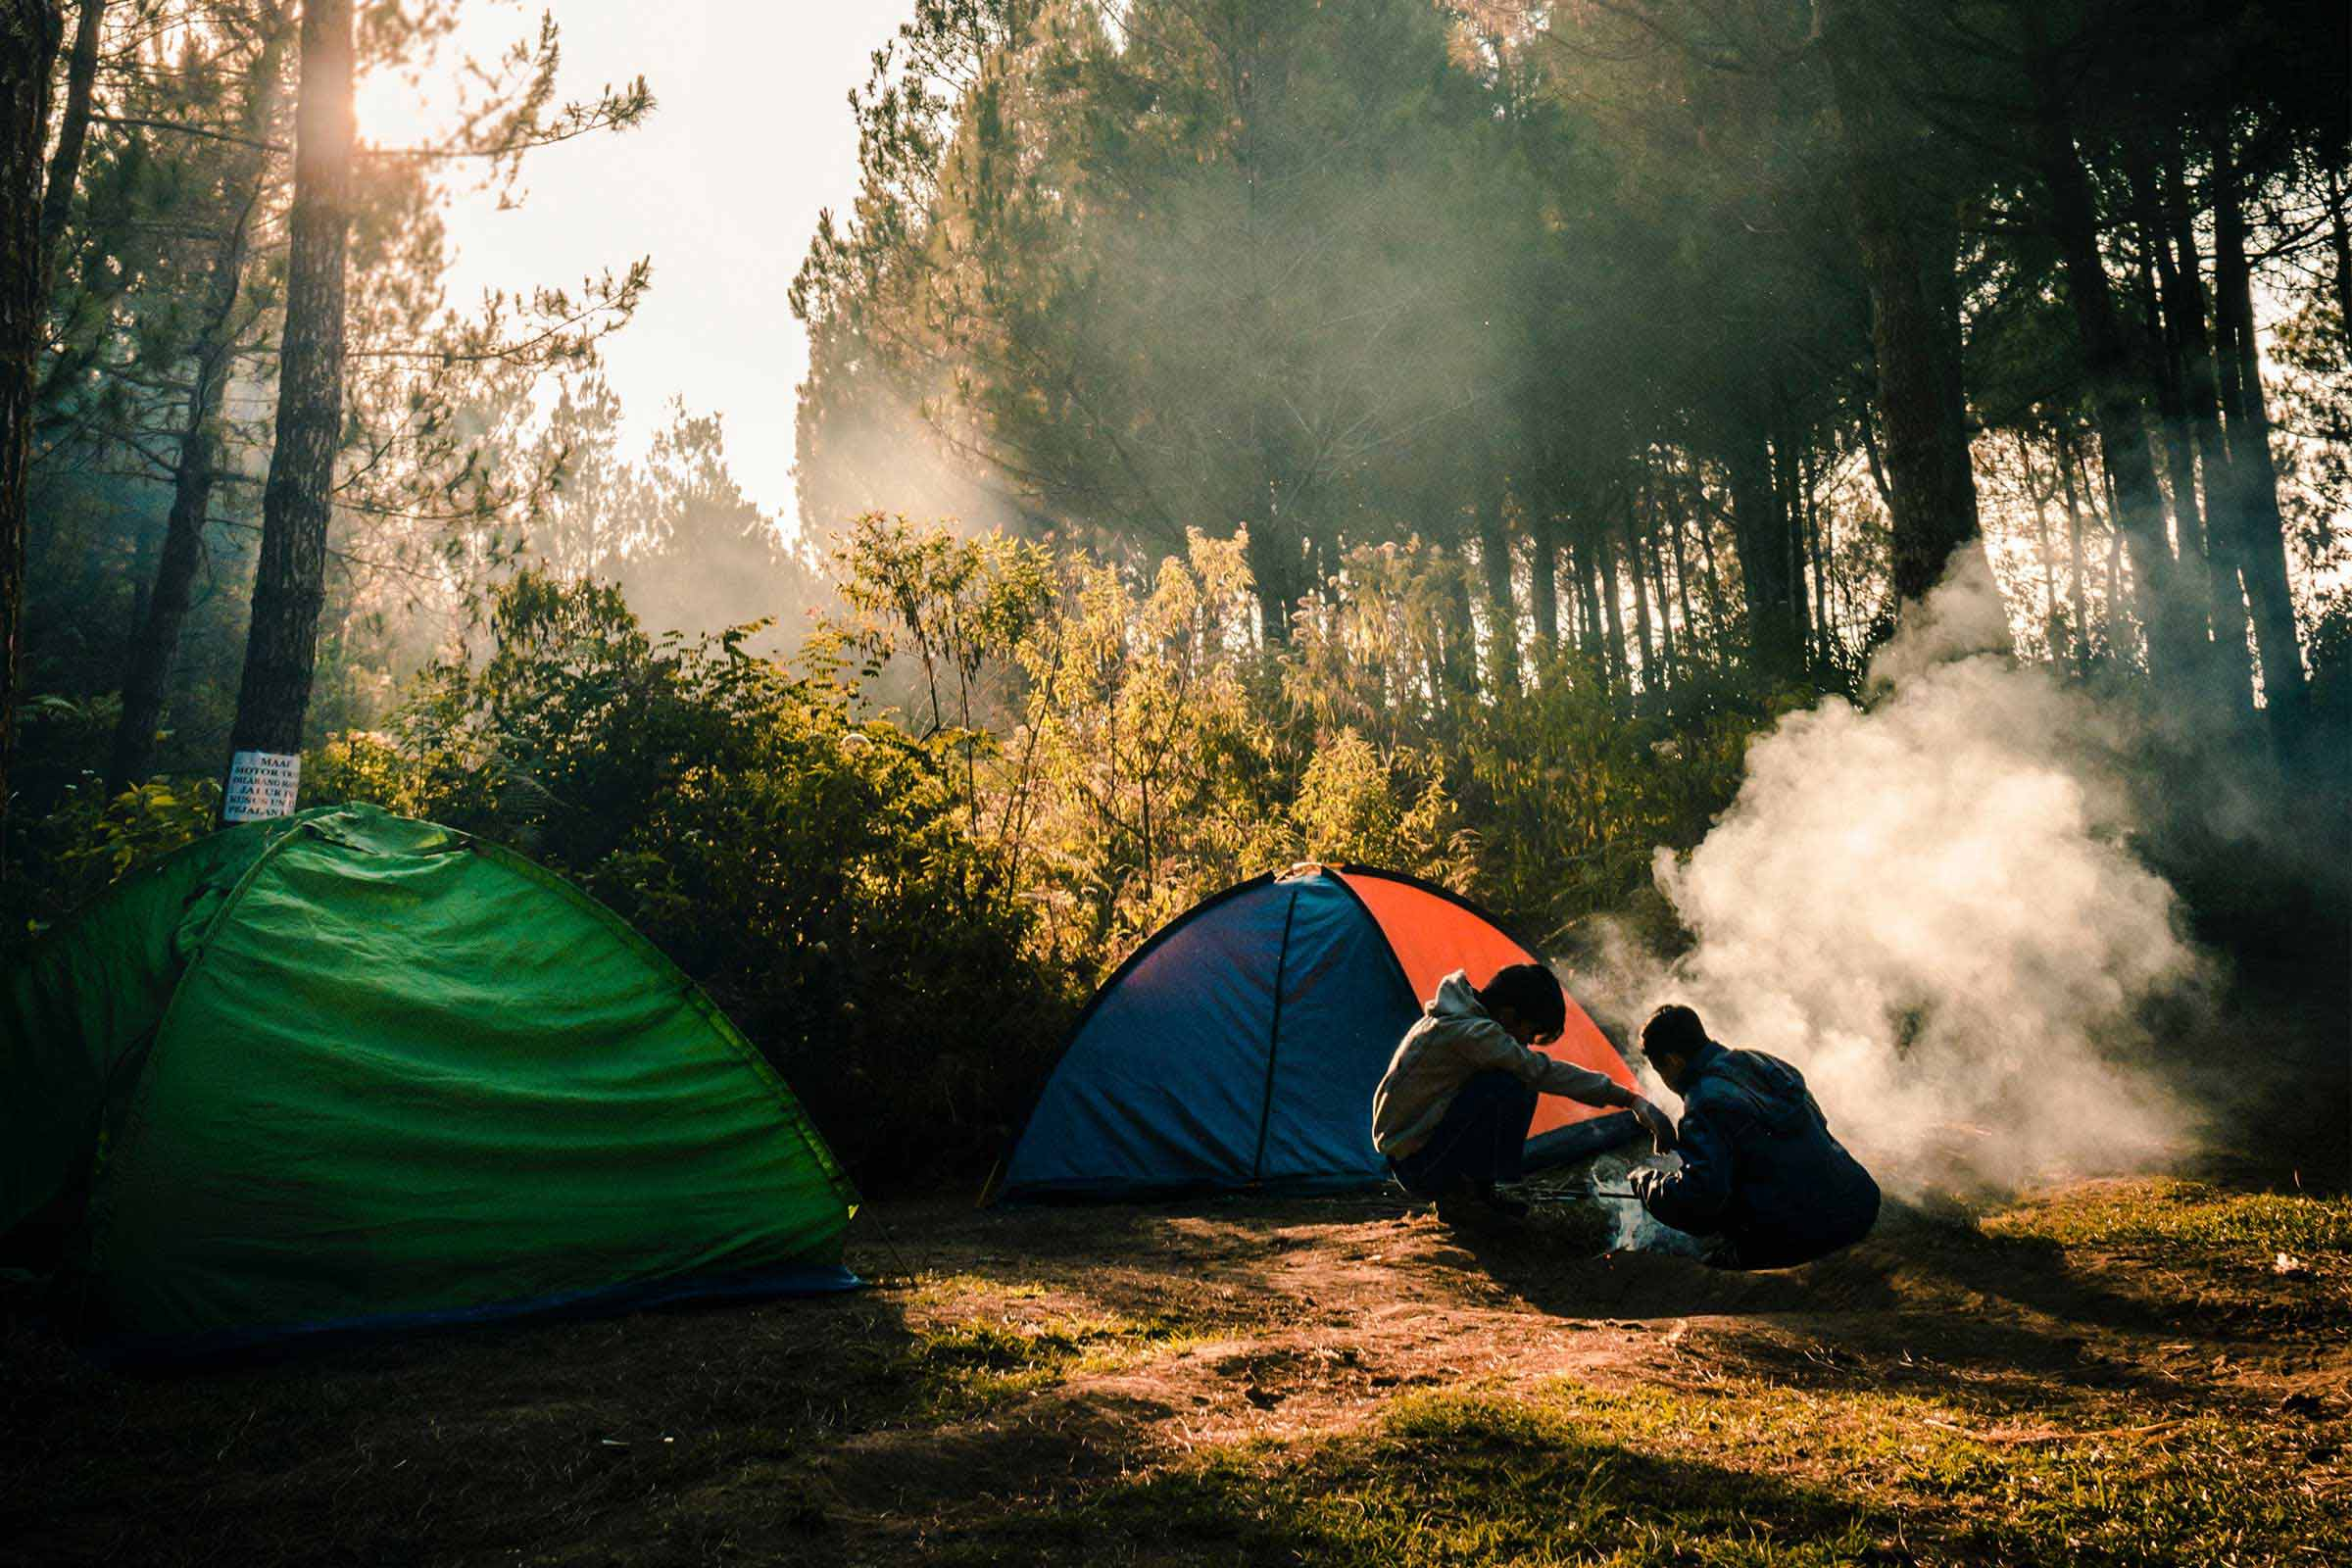 Outdoor recreation students at a campsite